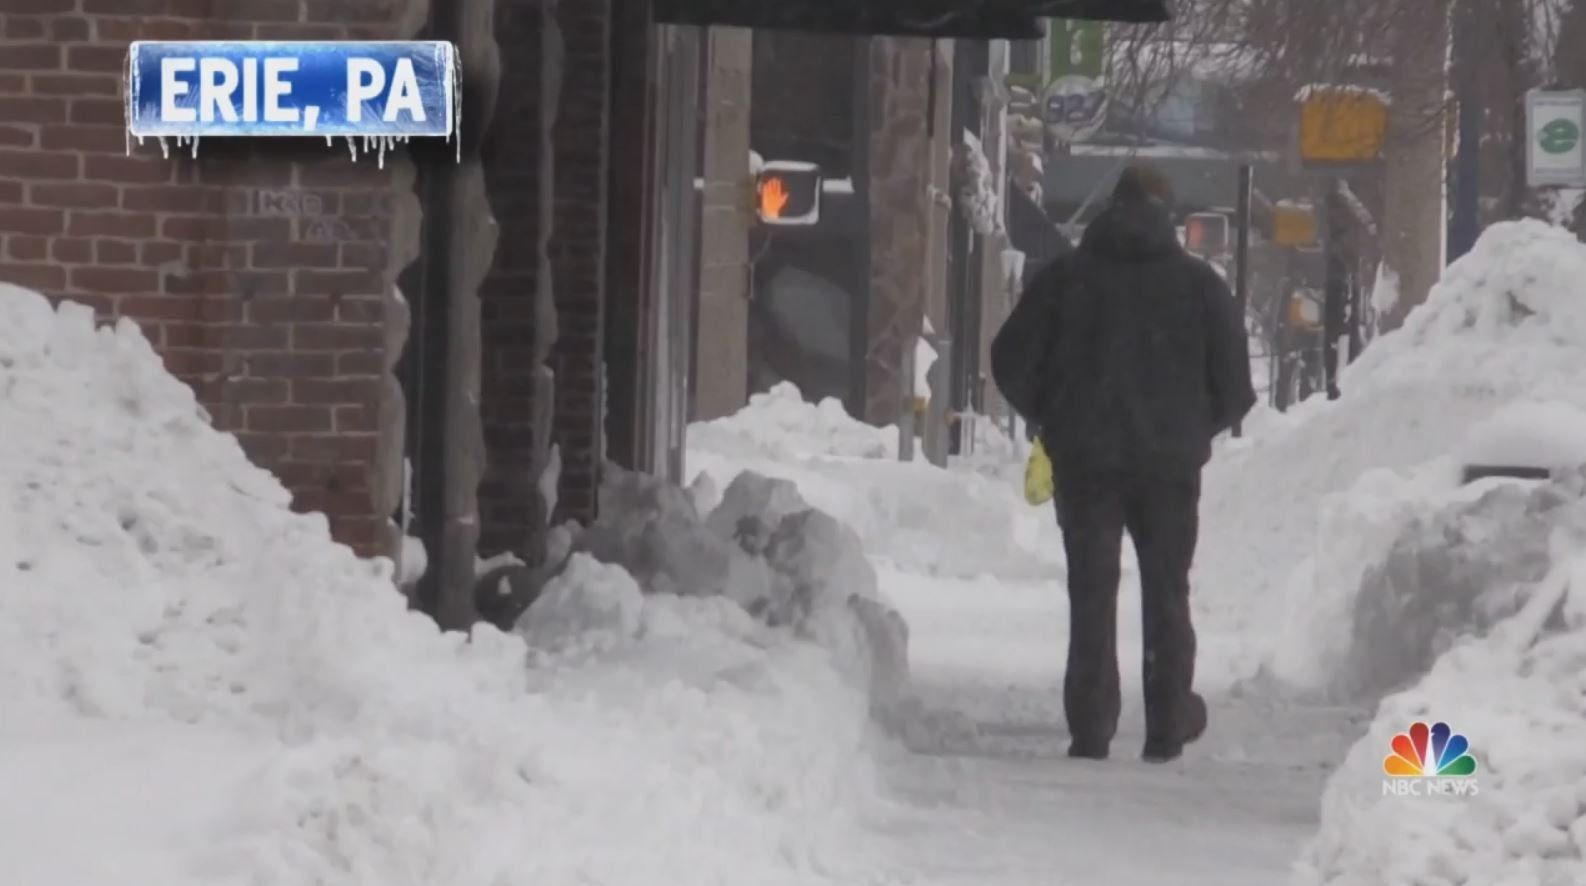 Snow in Erie, PA./NBC News